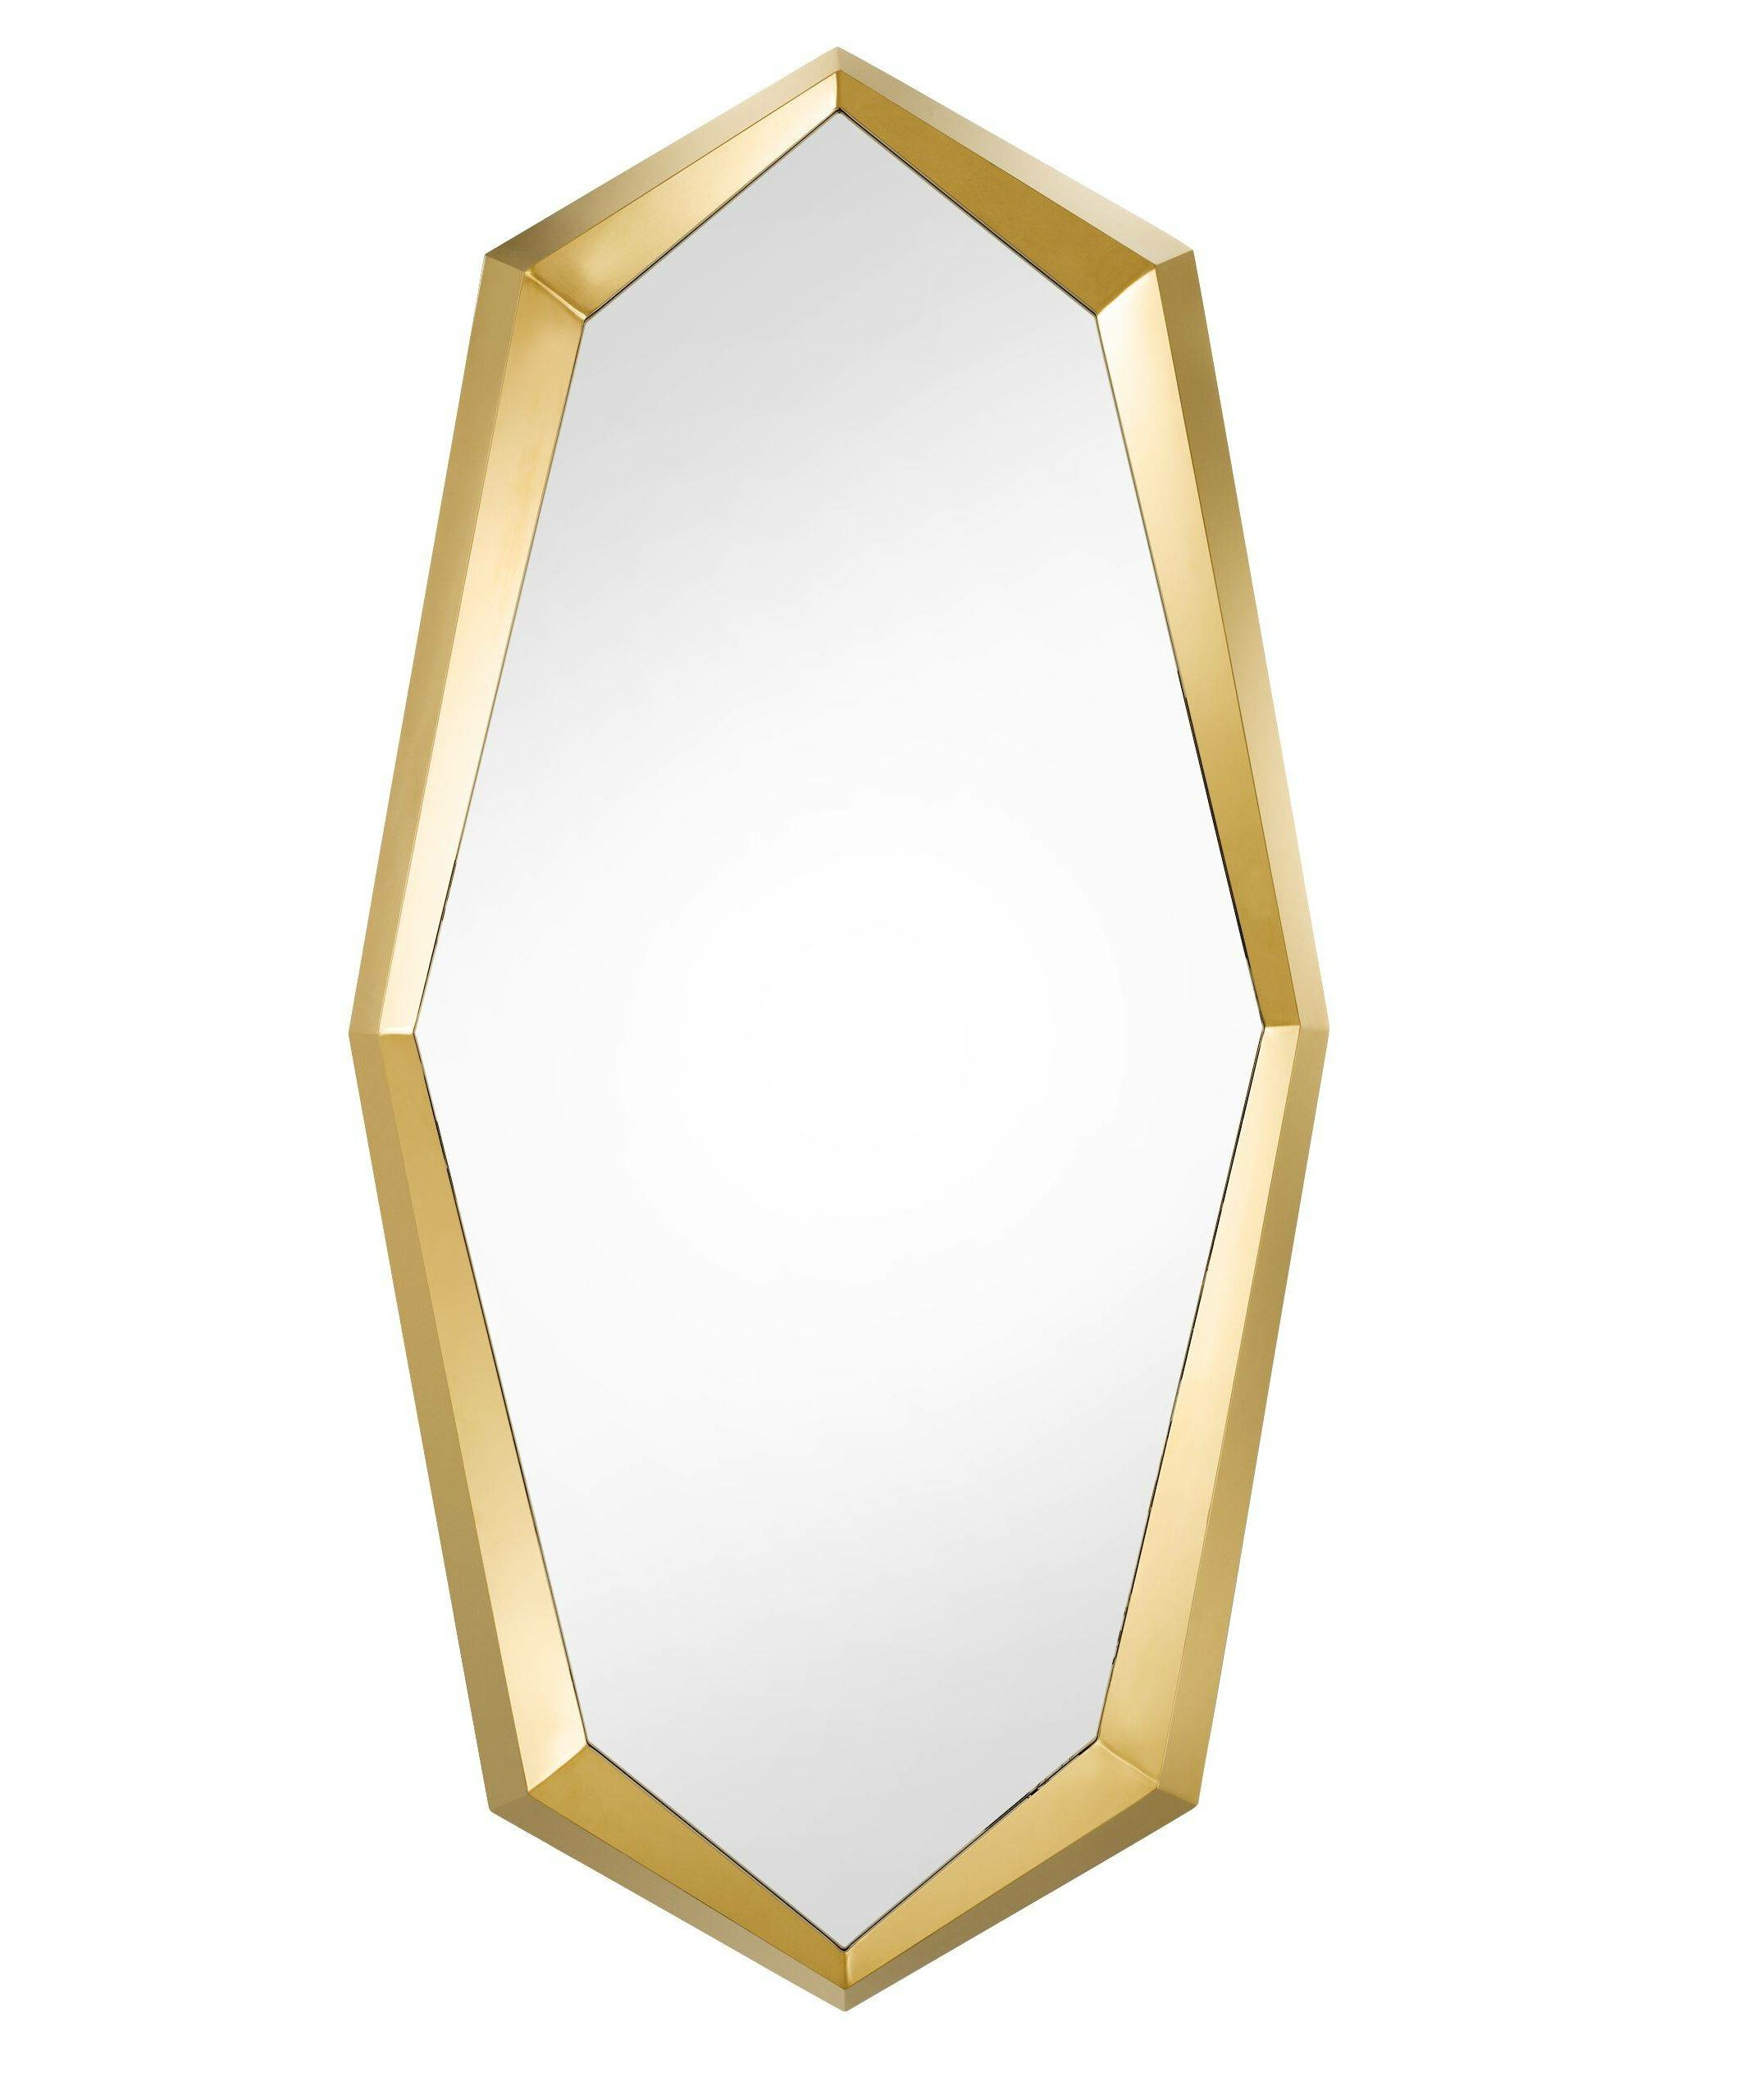 Trendy Broadmeadow Glam Accent Wall Mirrors With Regard To Narcissus Octagonal Glam Accent Mirror (View 18 of 20)